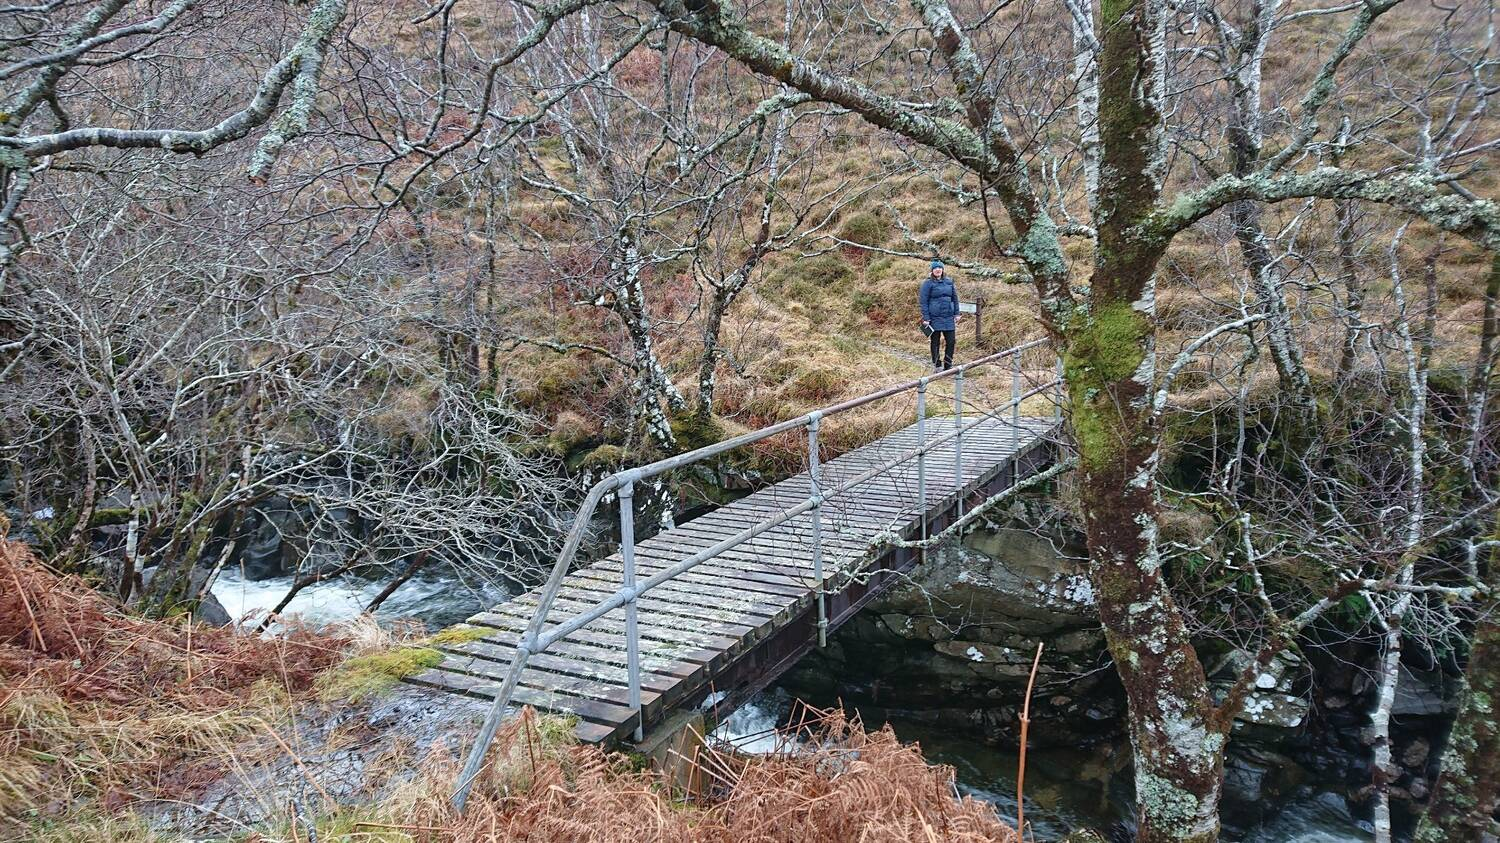 A wooden bridge with a metal handrail on one side spans a rushing river in a Highland woodland.